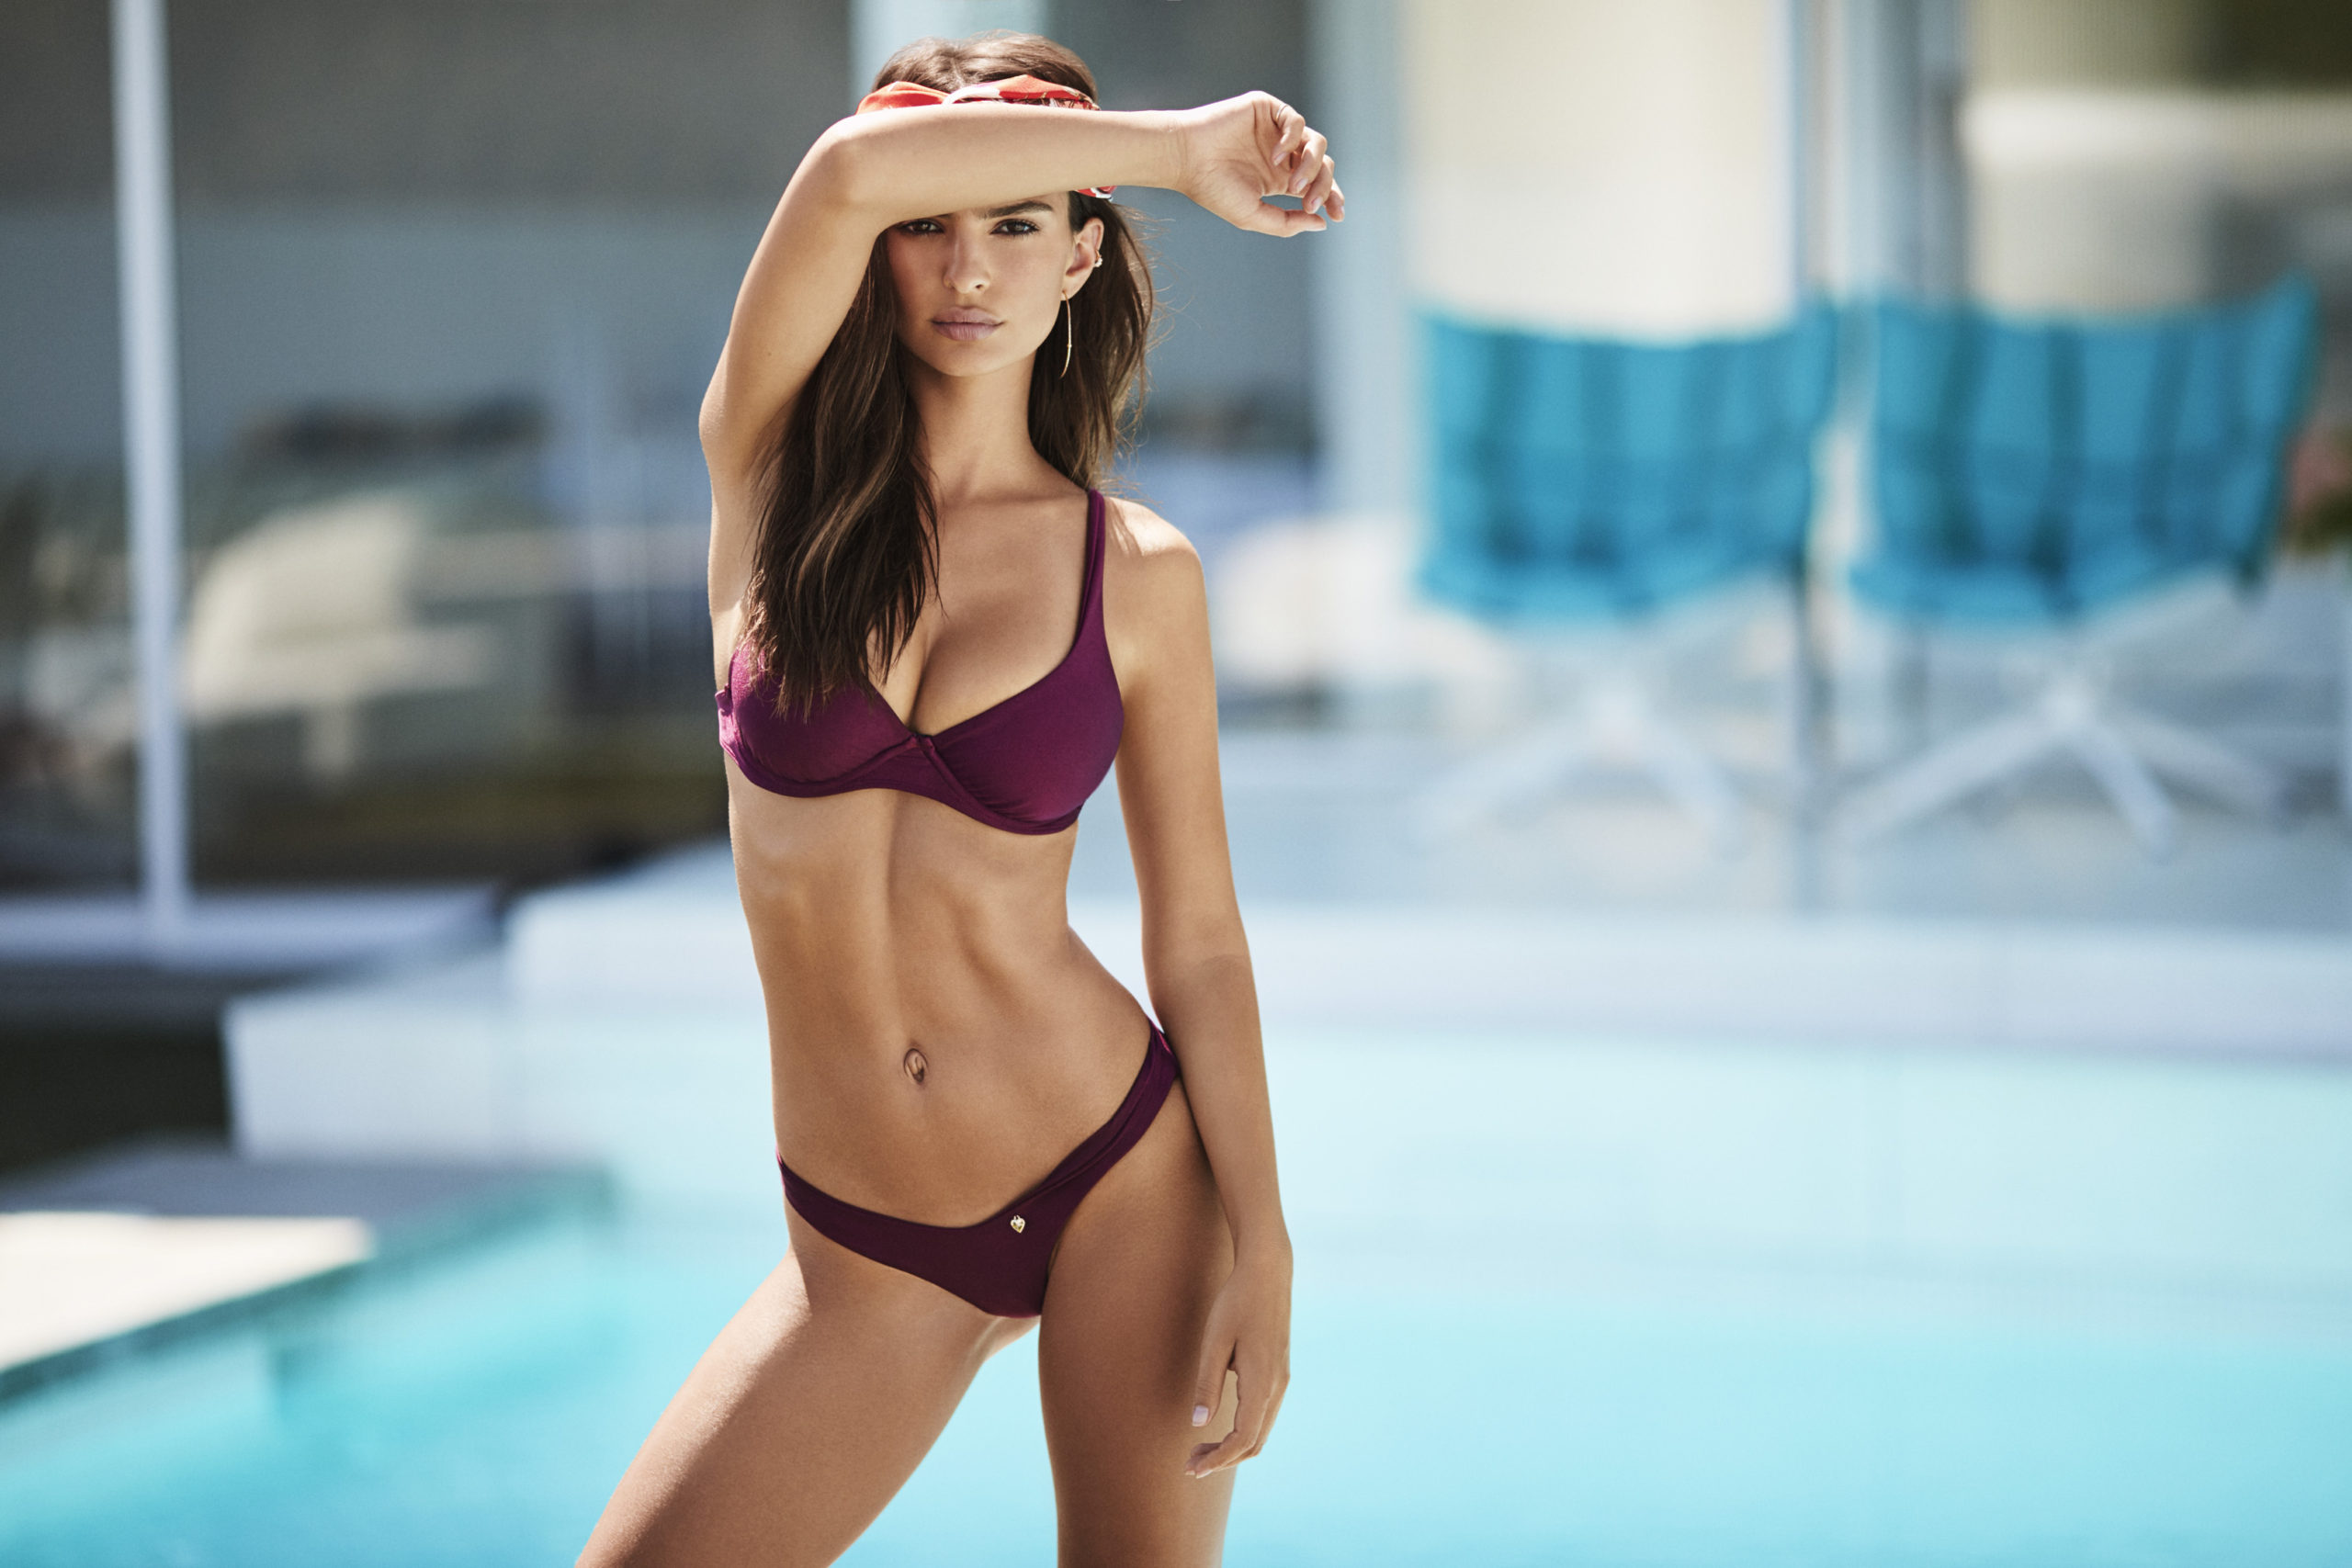 Emily Ratajkowski Super Hot Bikini Image scaled - Emily Ratajkowski Net Worth, Pics, Wallpapers, Career and Biography